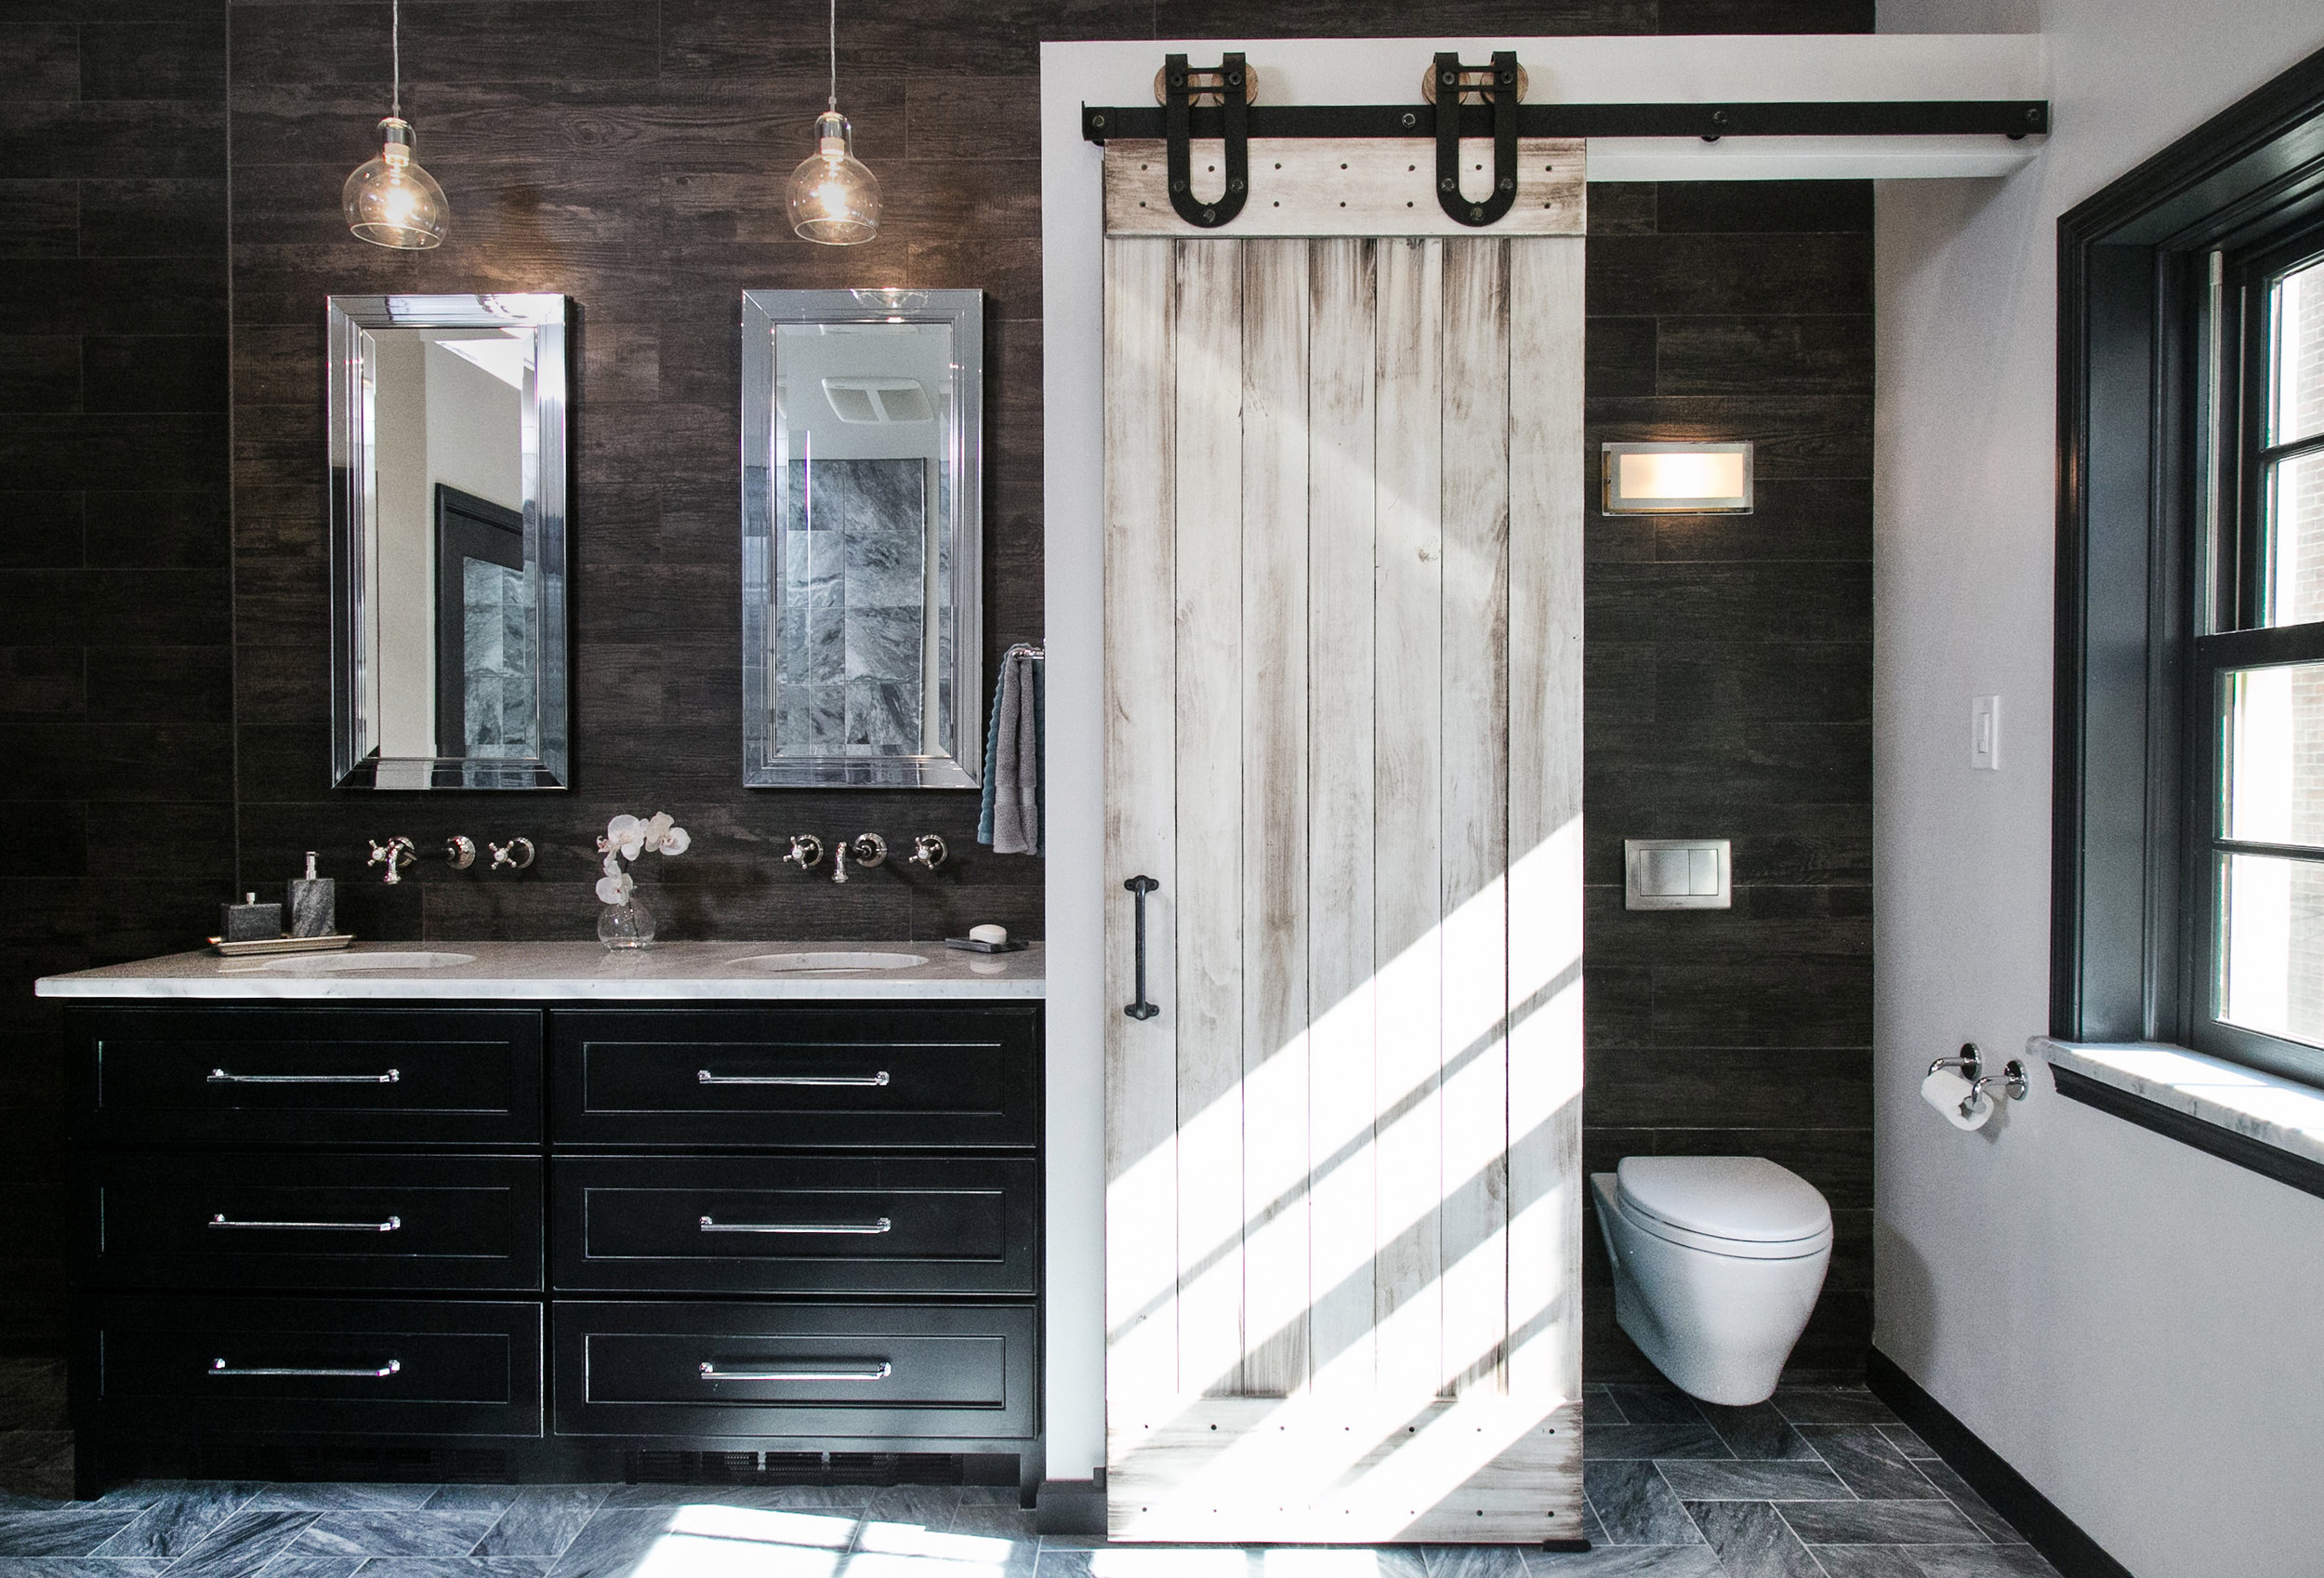 Rittenhouse Square Master Bathroom:  220 Sq.ft Renovation - House Built 1903 - Rustic Luxe